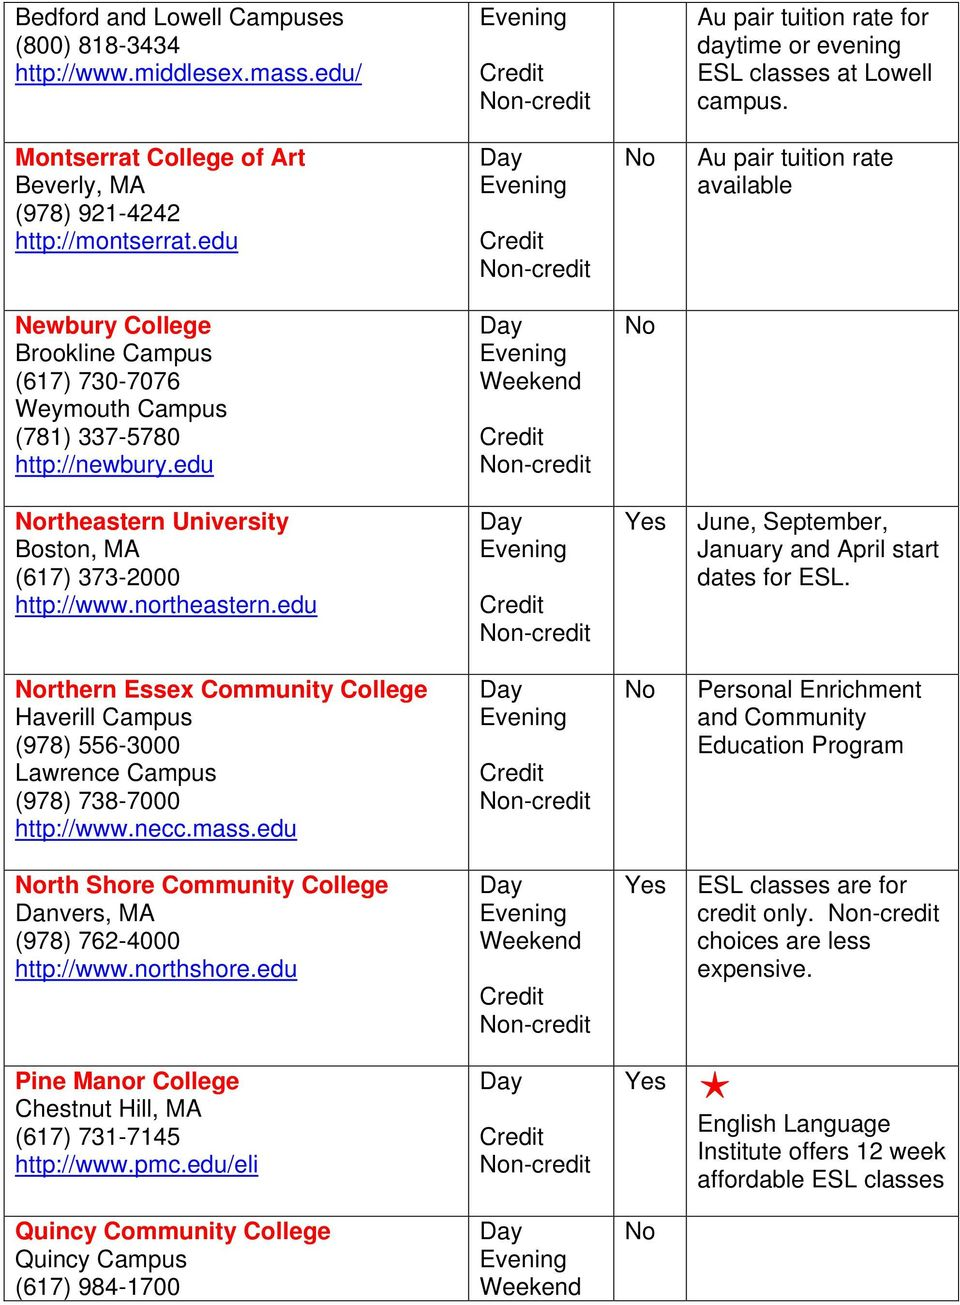 edu rtheastern University (617) 373-2000 http://www.northeastern.edu June, September, January and April start dates for ESL.